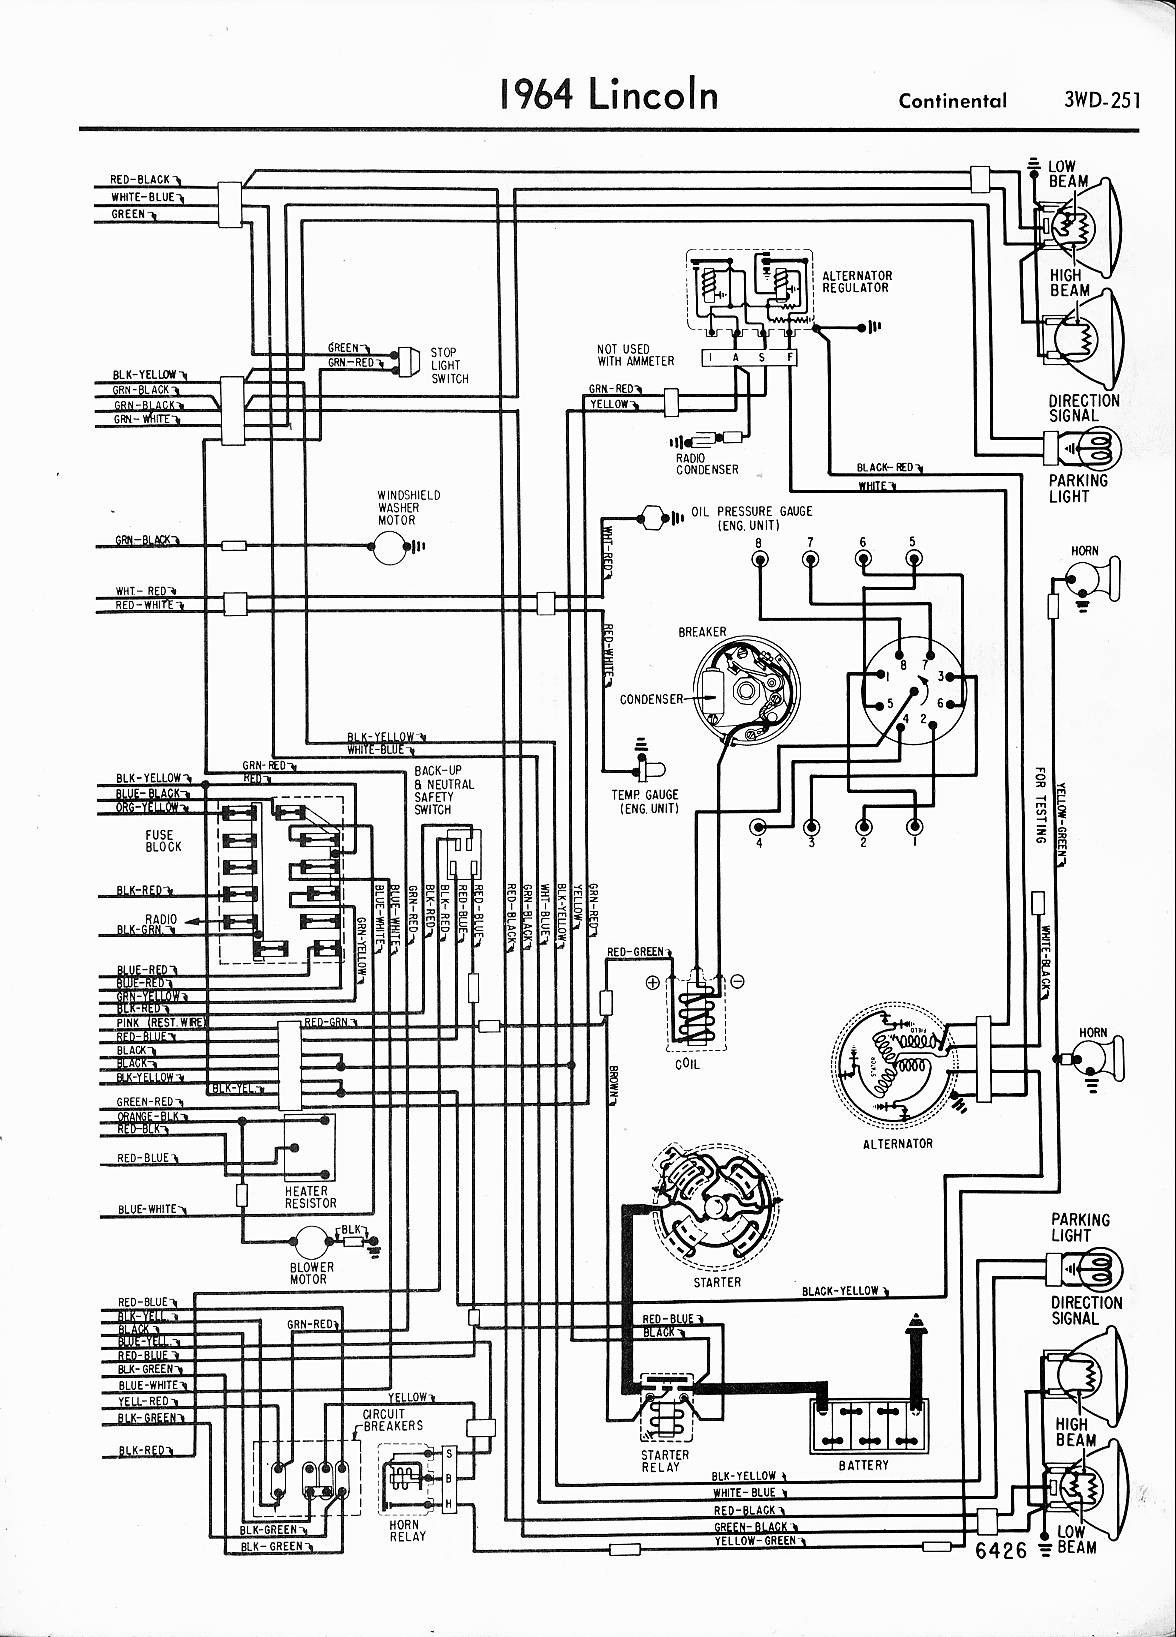 1965 lincoln wiring diagram - wiring diagram page dry-best -  dry-best.granballodicomo.it  granballodicomo.it